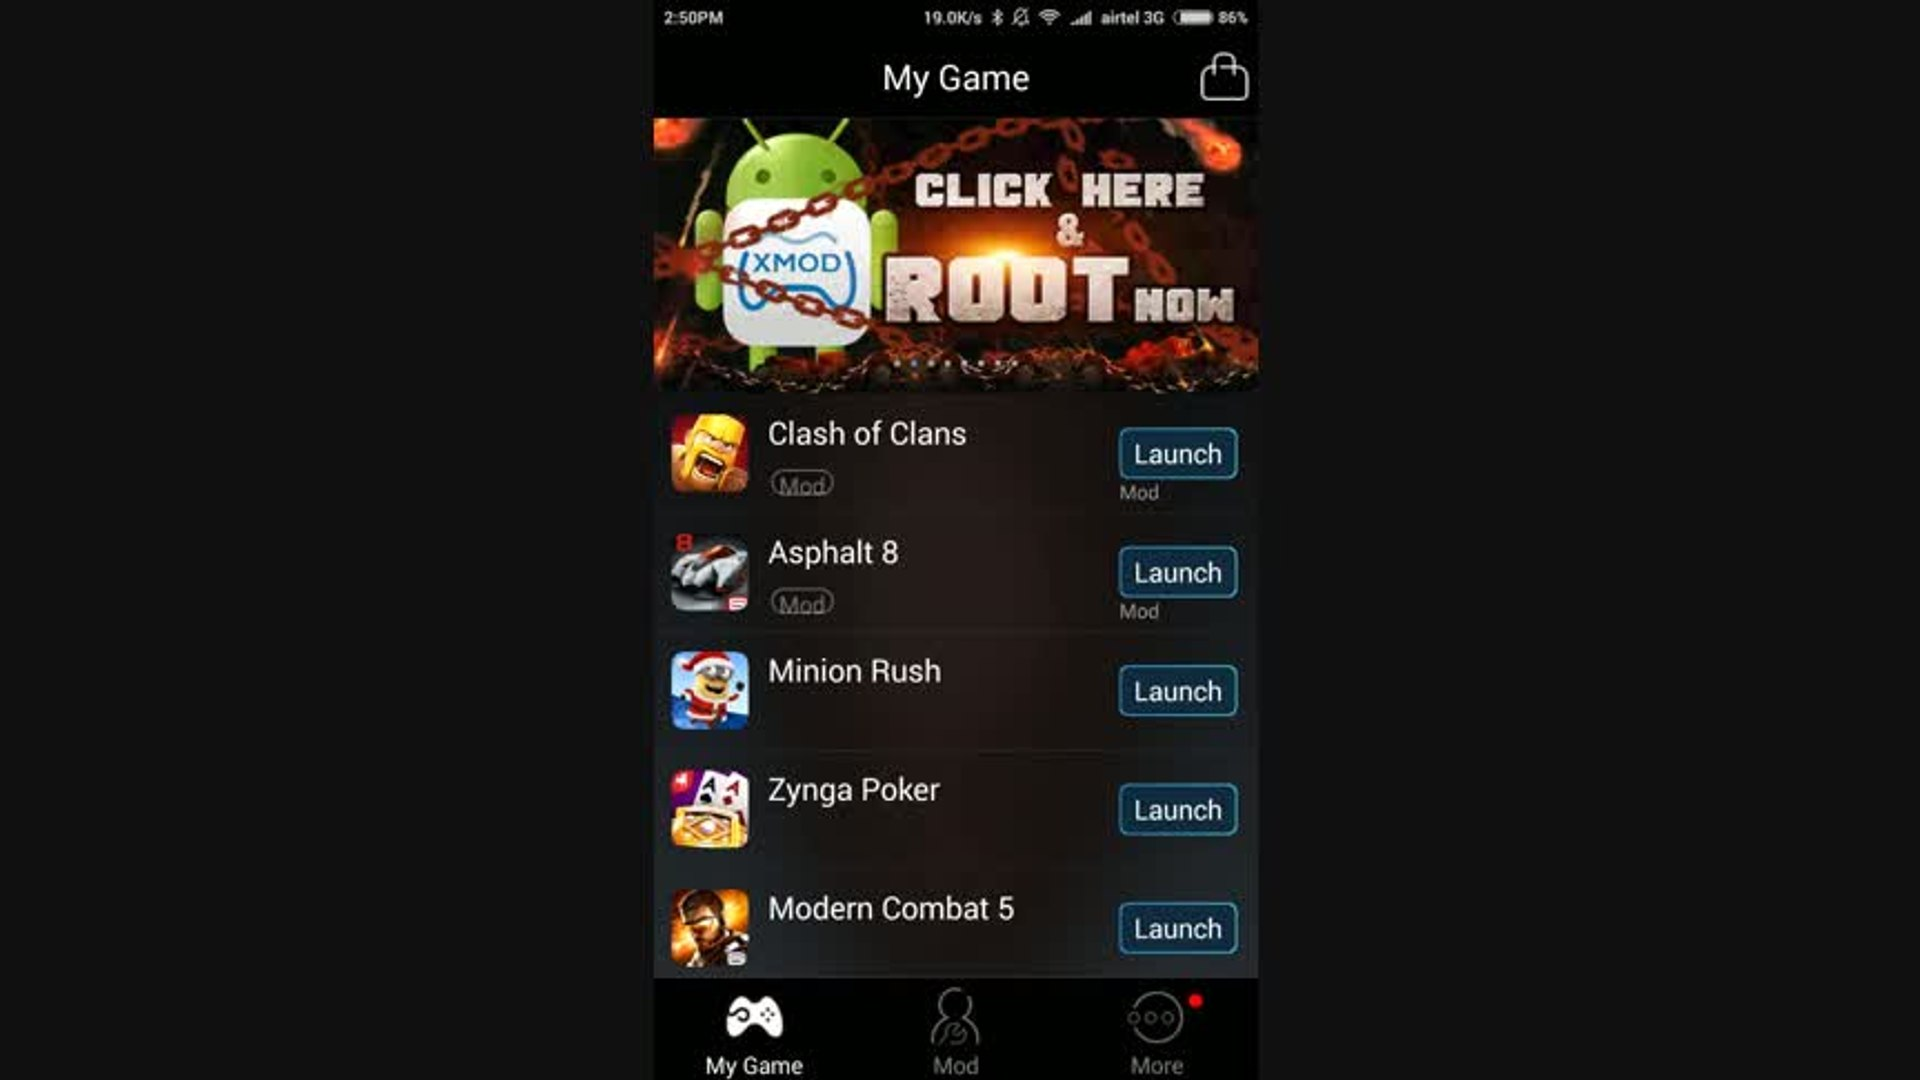 How to Run XMOD Games in Xiaomi Devices mp4